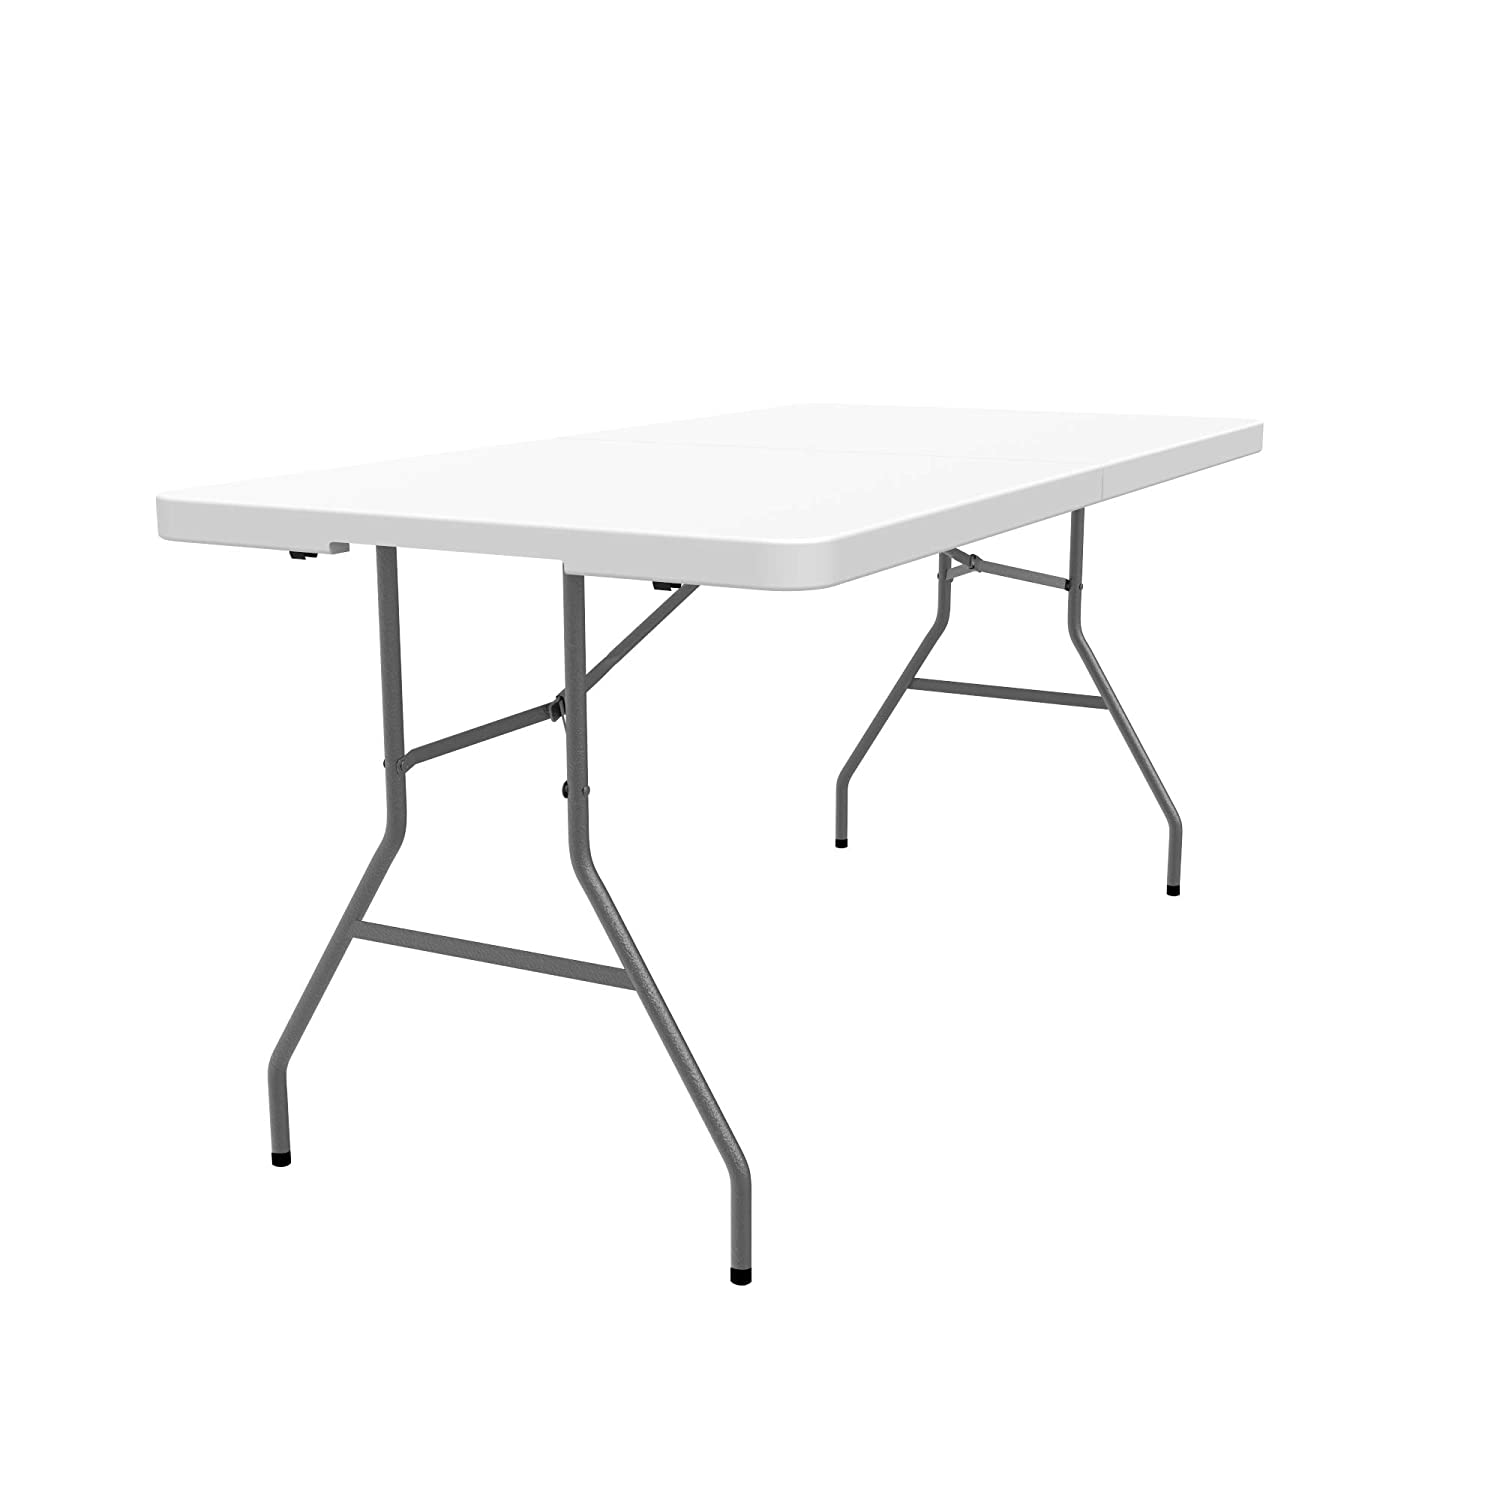 Material: HDPE Folding Portable Table Heavy Duty Plastic Table Maximum load: 220 lbs White Todeco 59.8 x 28.1inch Foldable in half